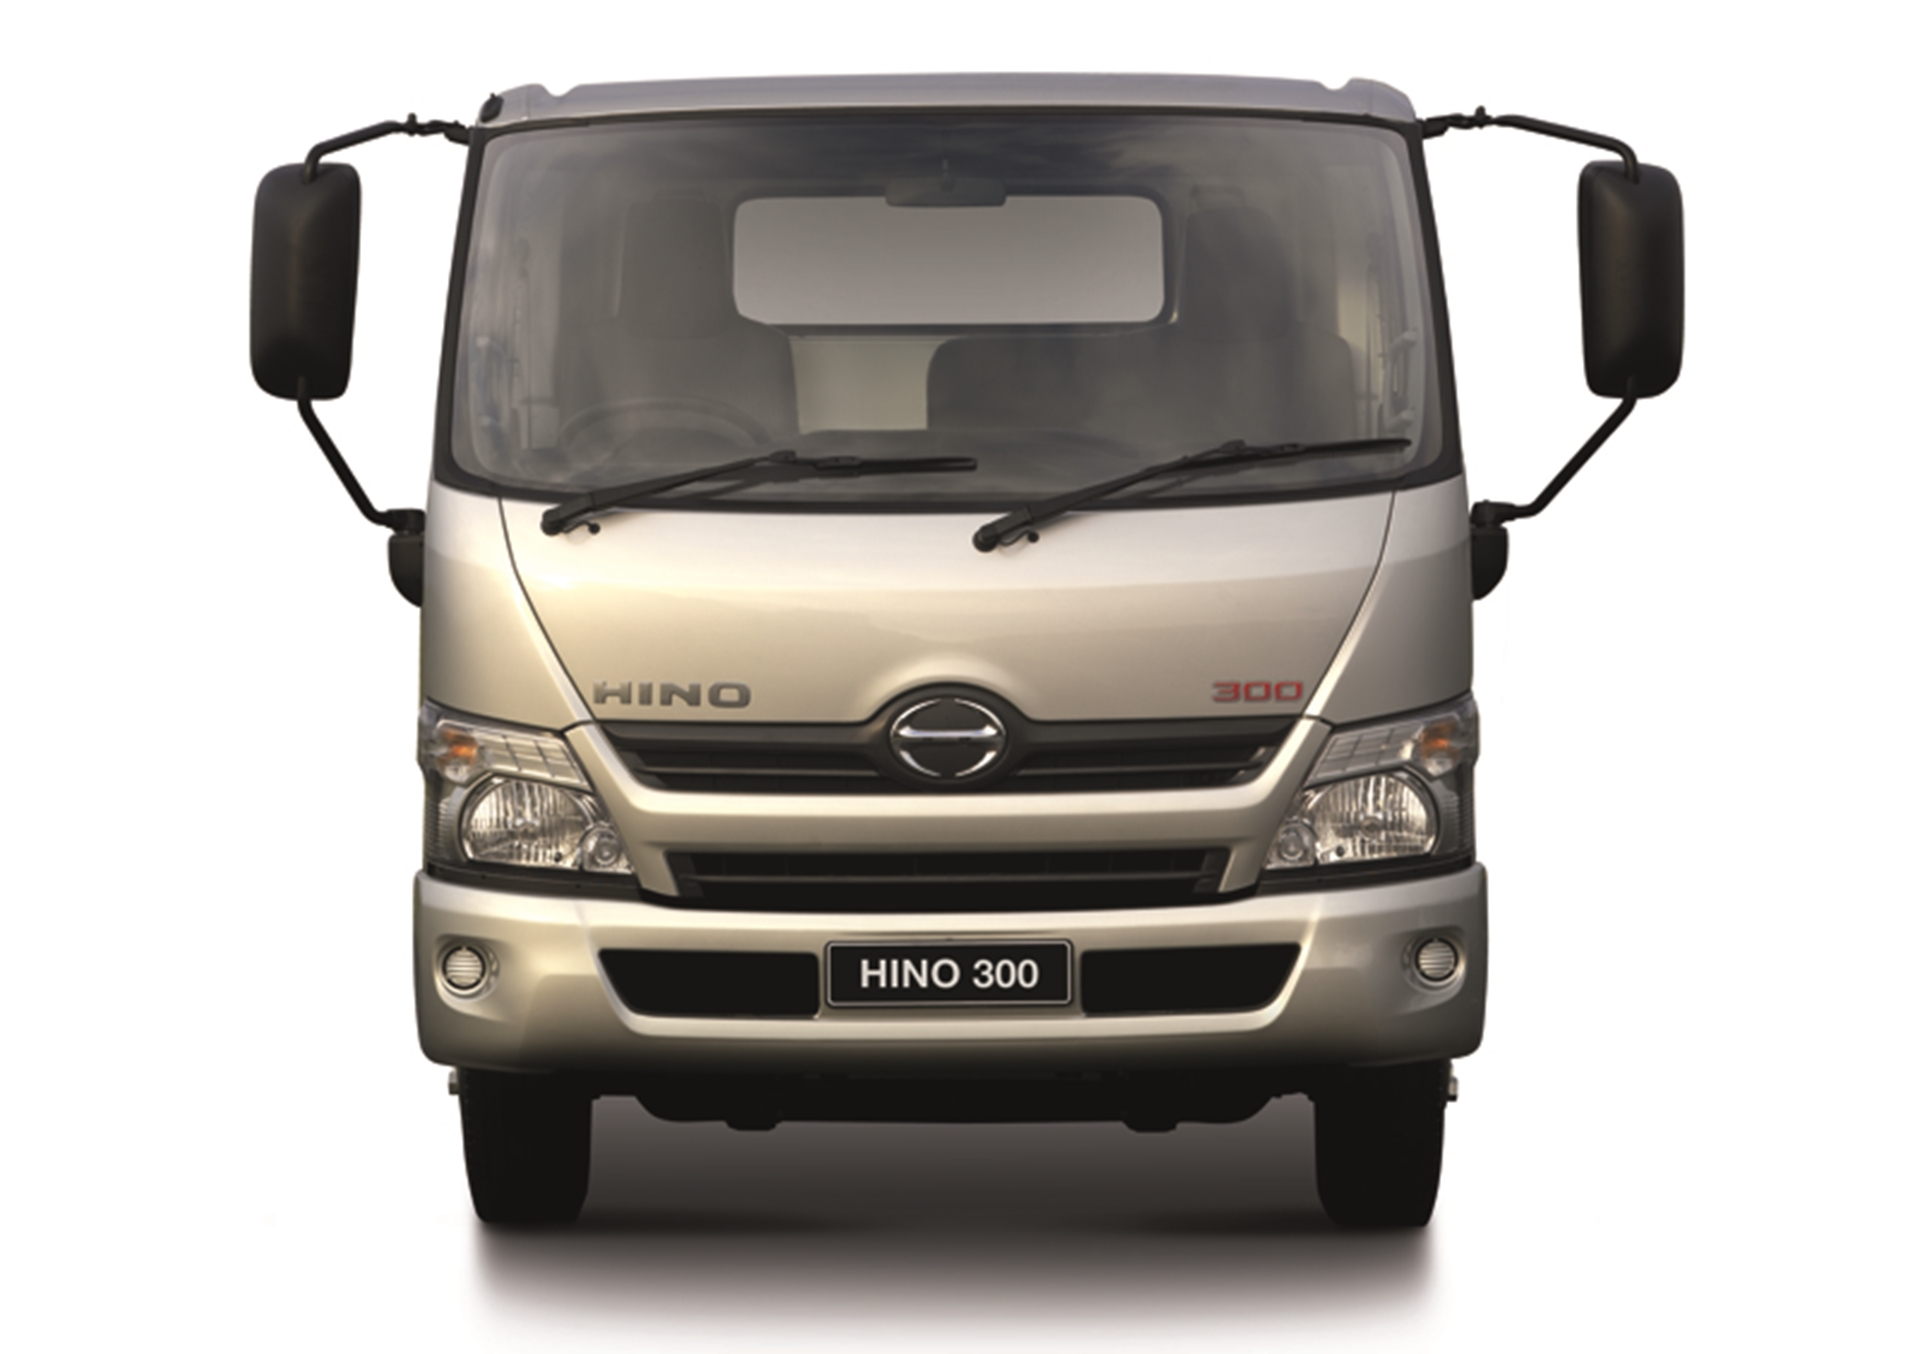 HINO 300 614 Front View